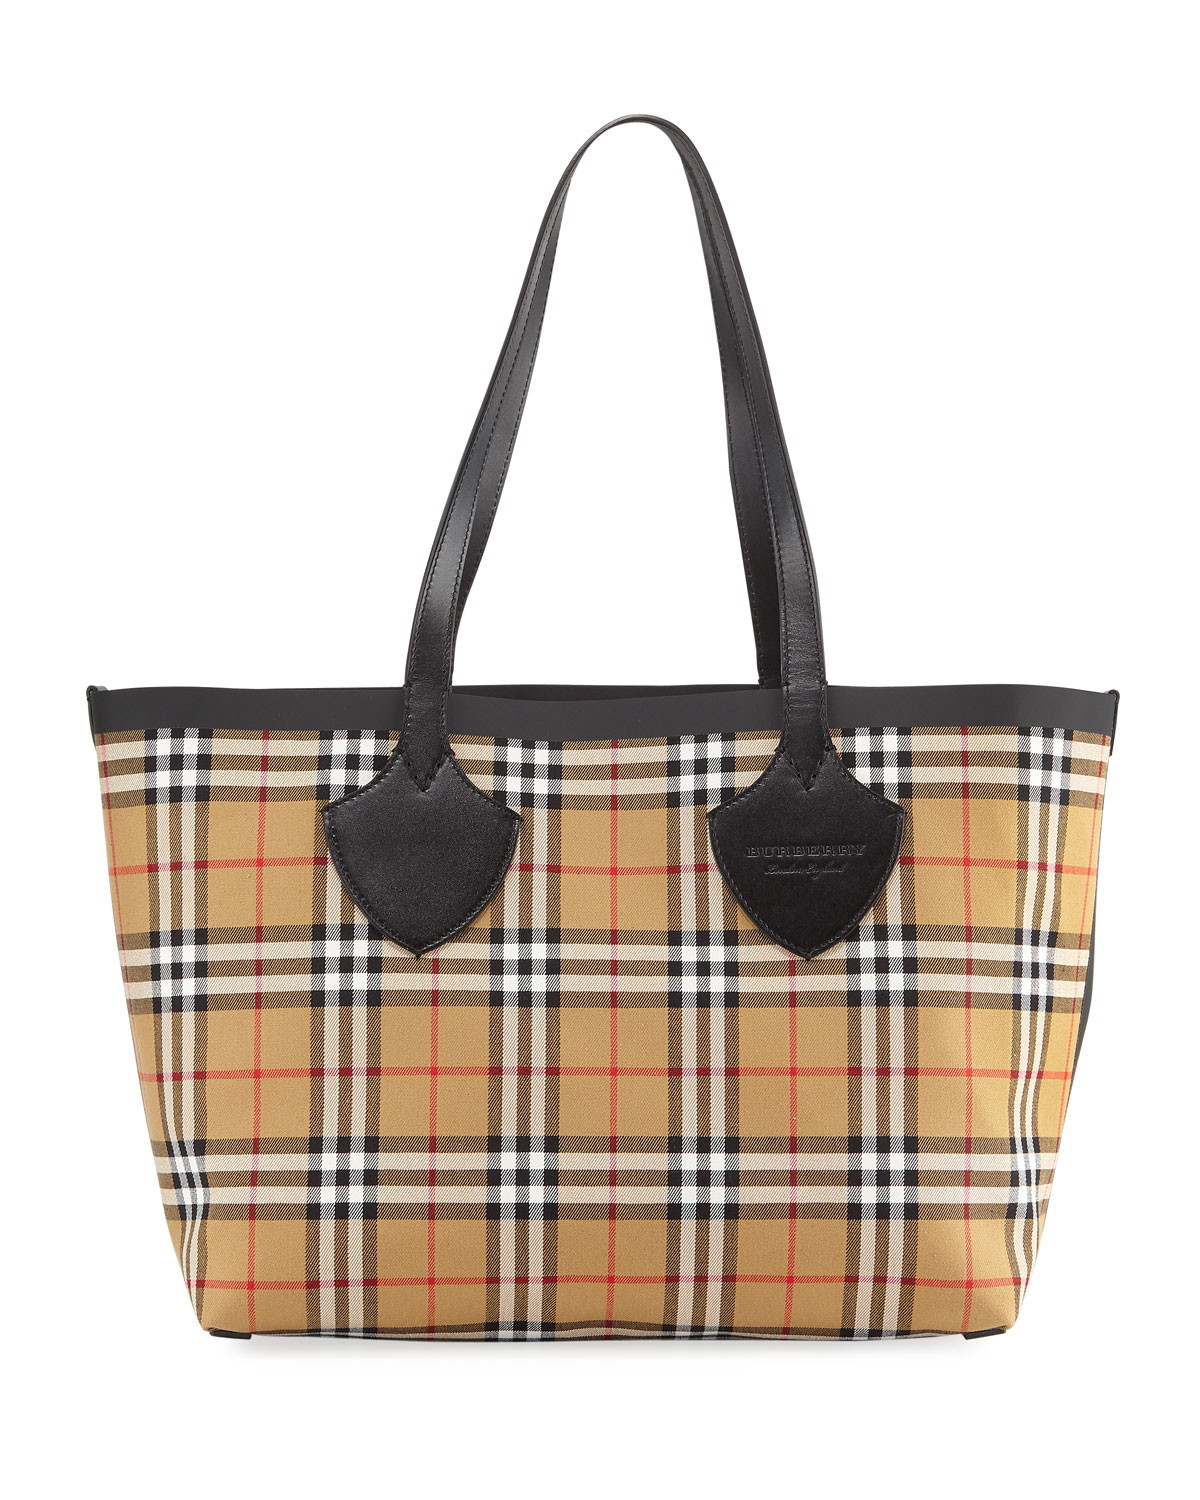 33d0e9a13a5 Burberry Medium Reversible Bonded Tartan Check Tote Bag | Neiman Marcus